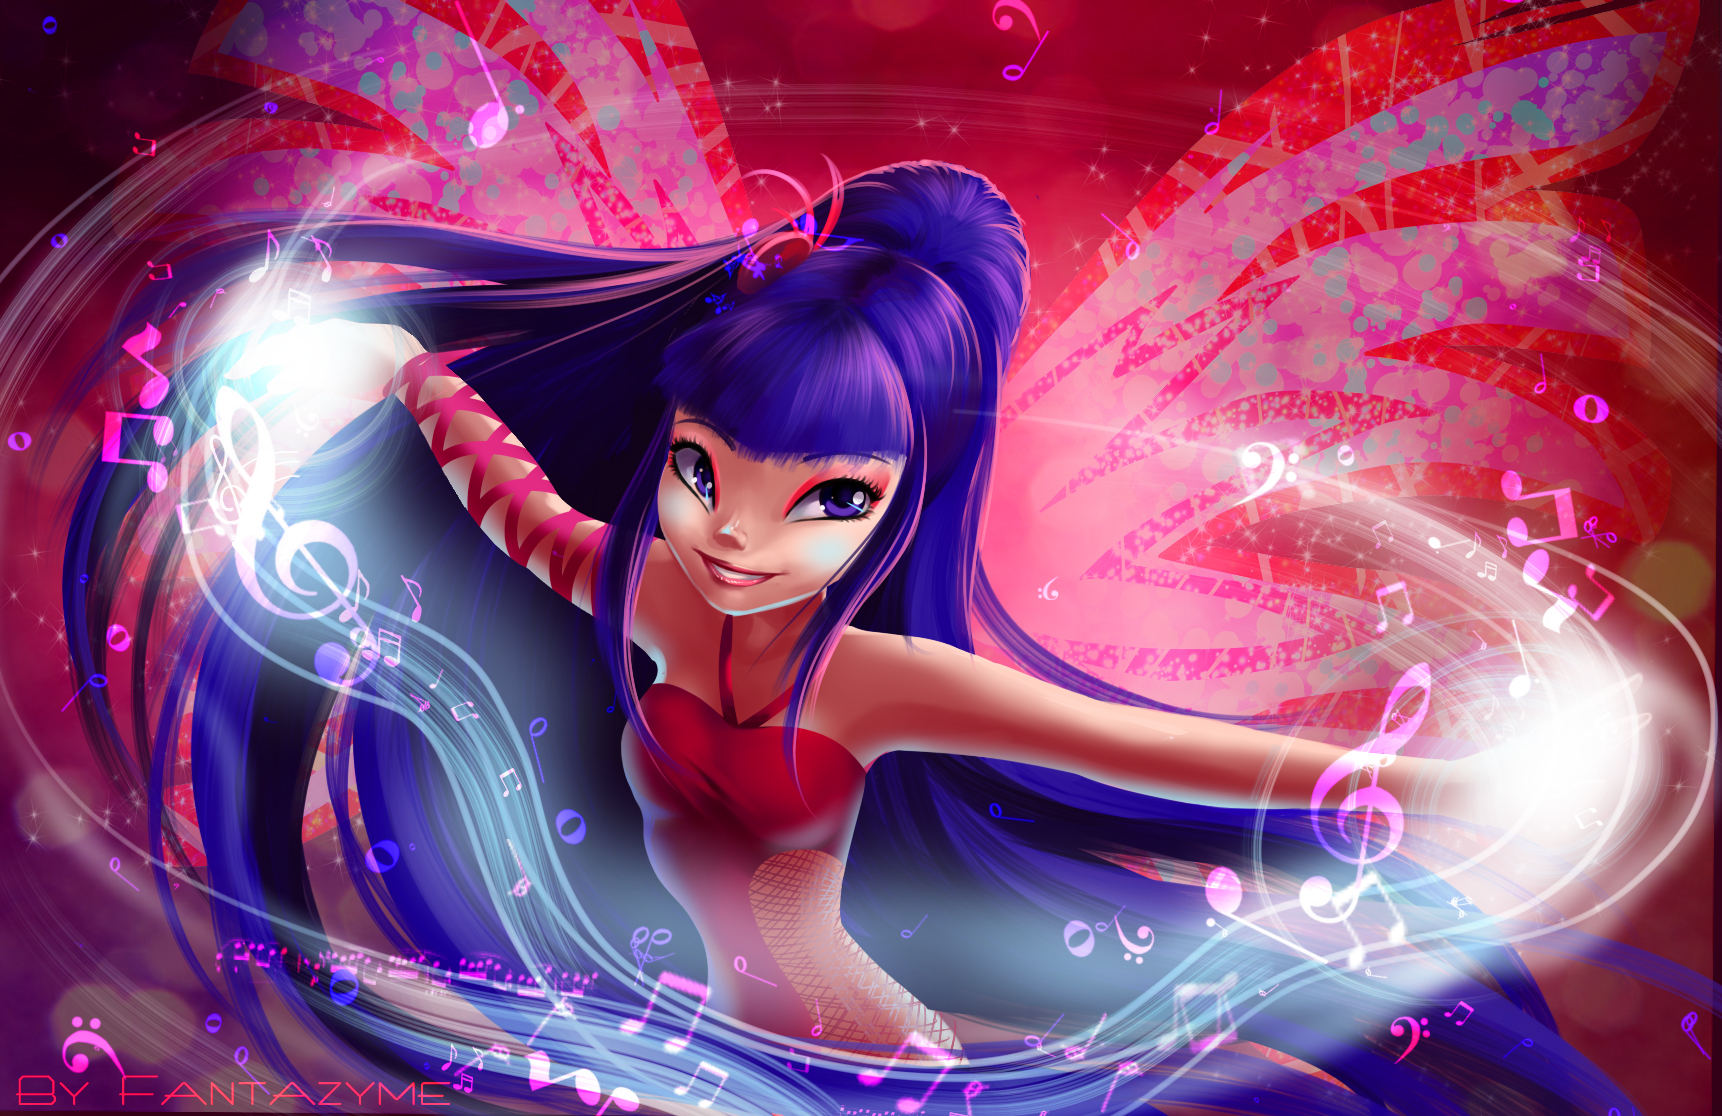 Winx club Musa Sirenix power\Винкс 5 сезон Муза Сиреникс